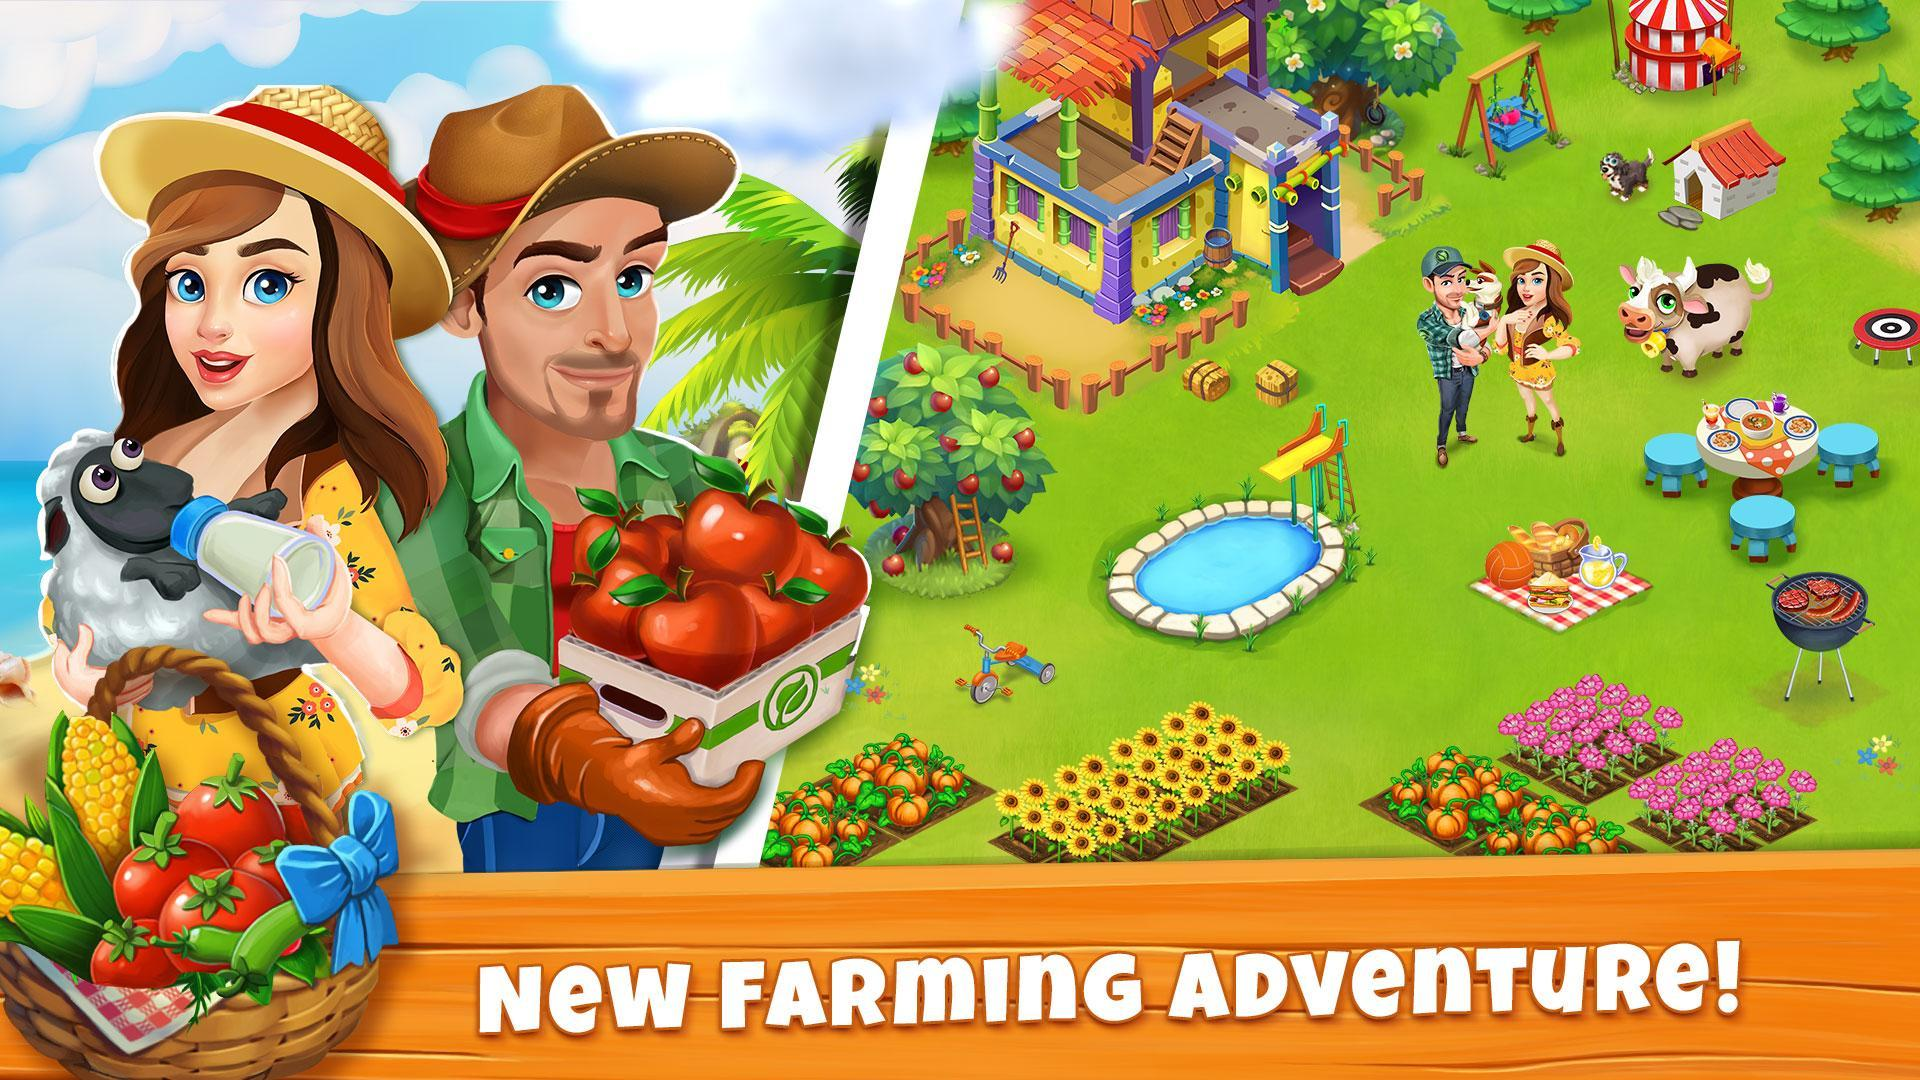 Village Farm Free Offline Farm Games For Android Apk Download